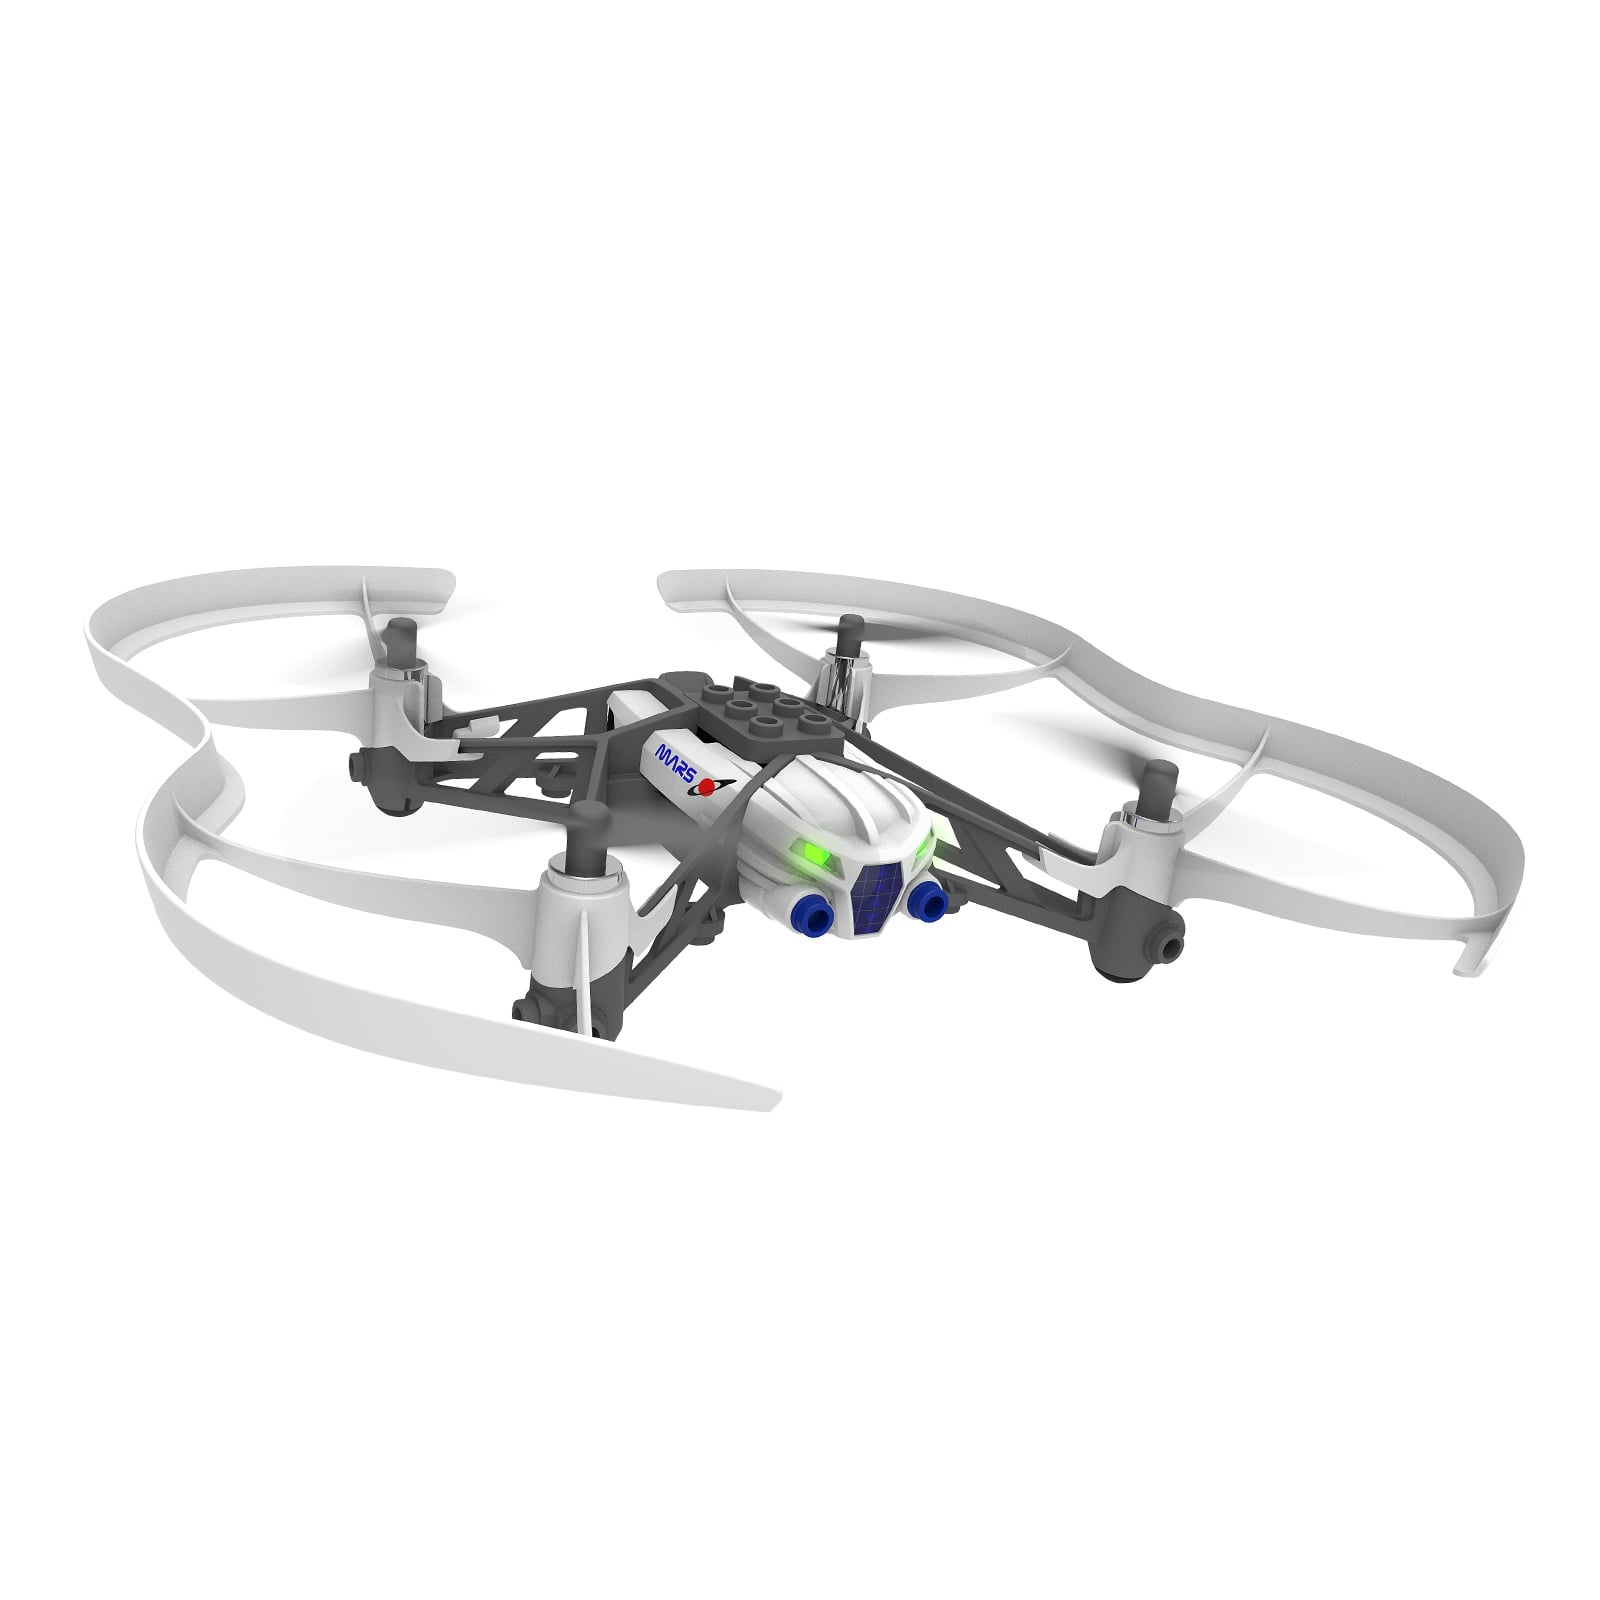 Parrot Airborne Mini Drone Quadcopters- Night and Cargo - $22.49 + Free shipping (Refurbished)